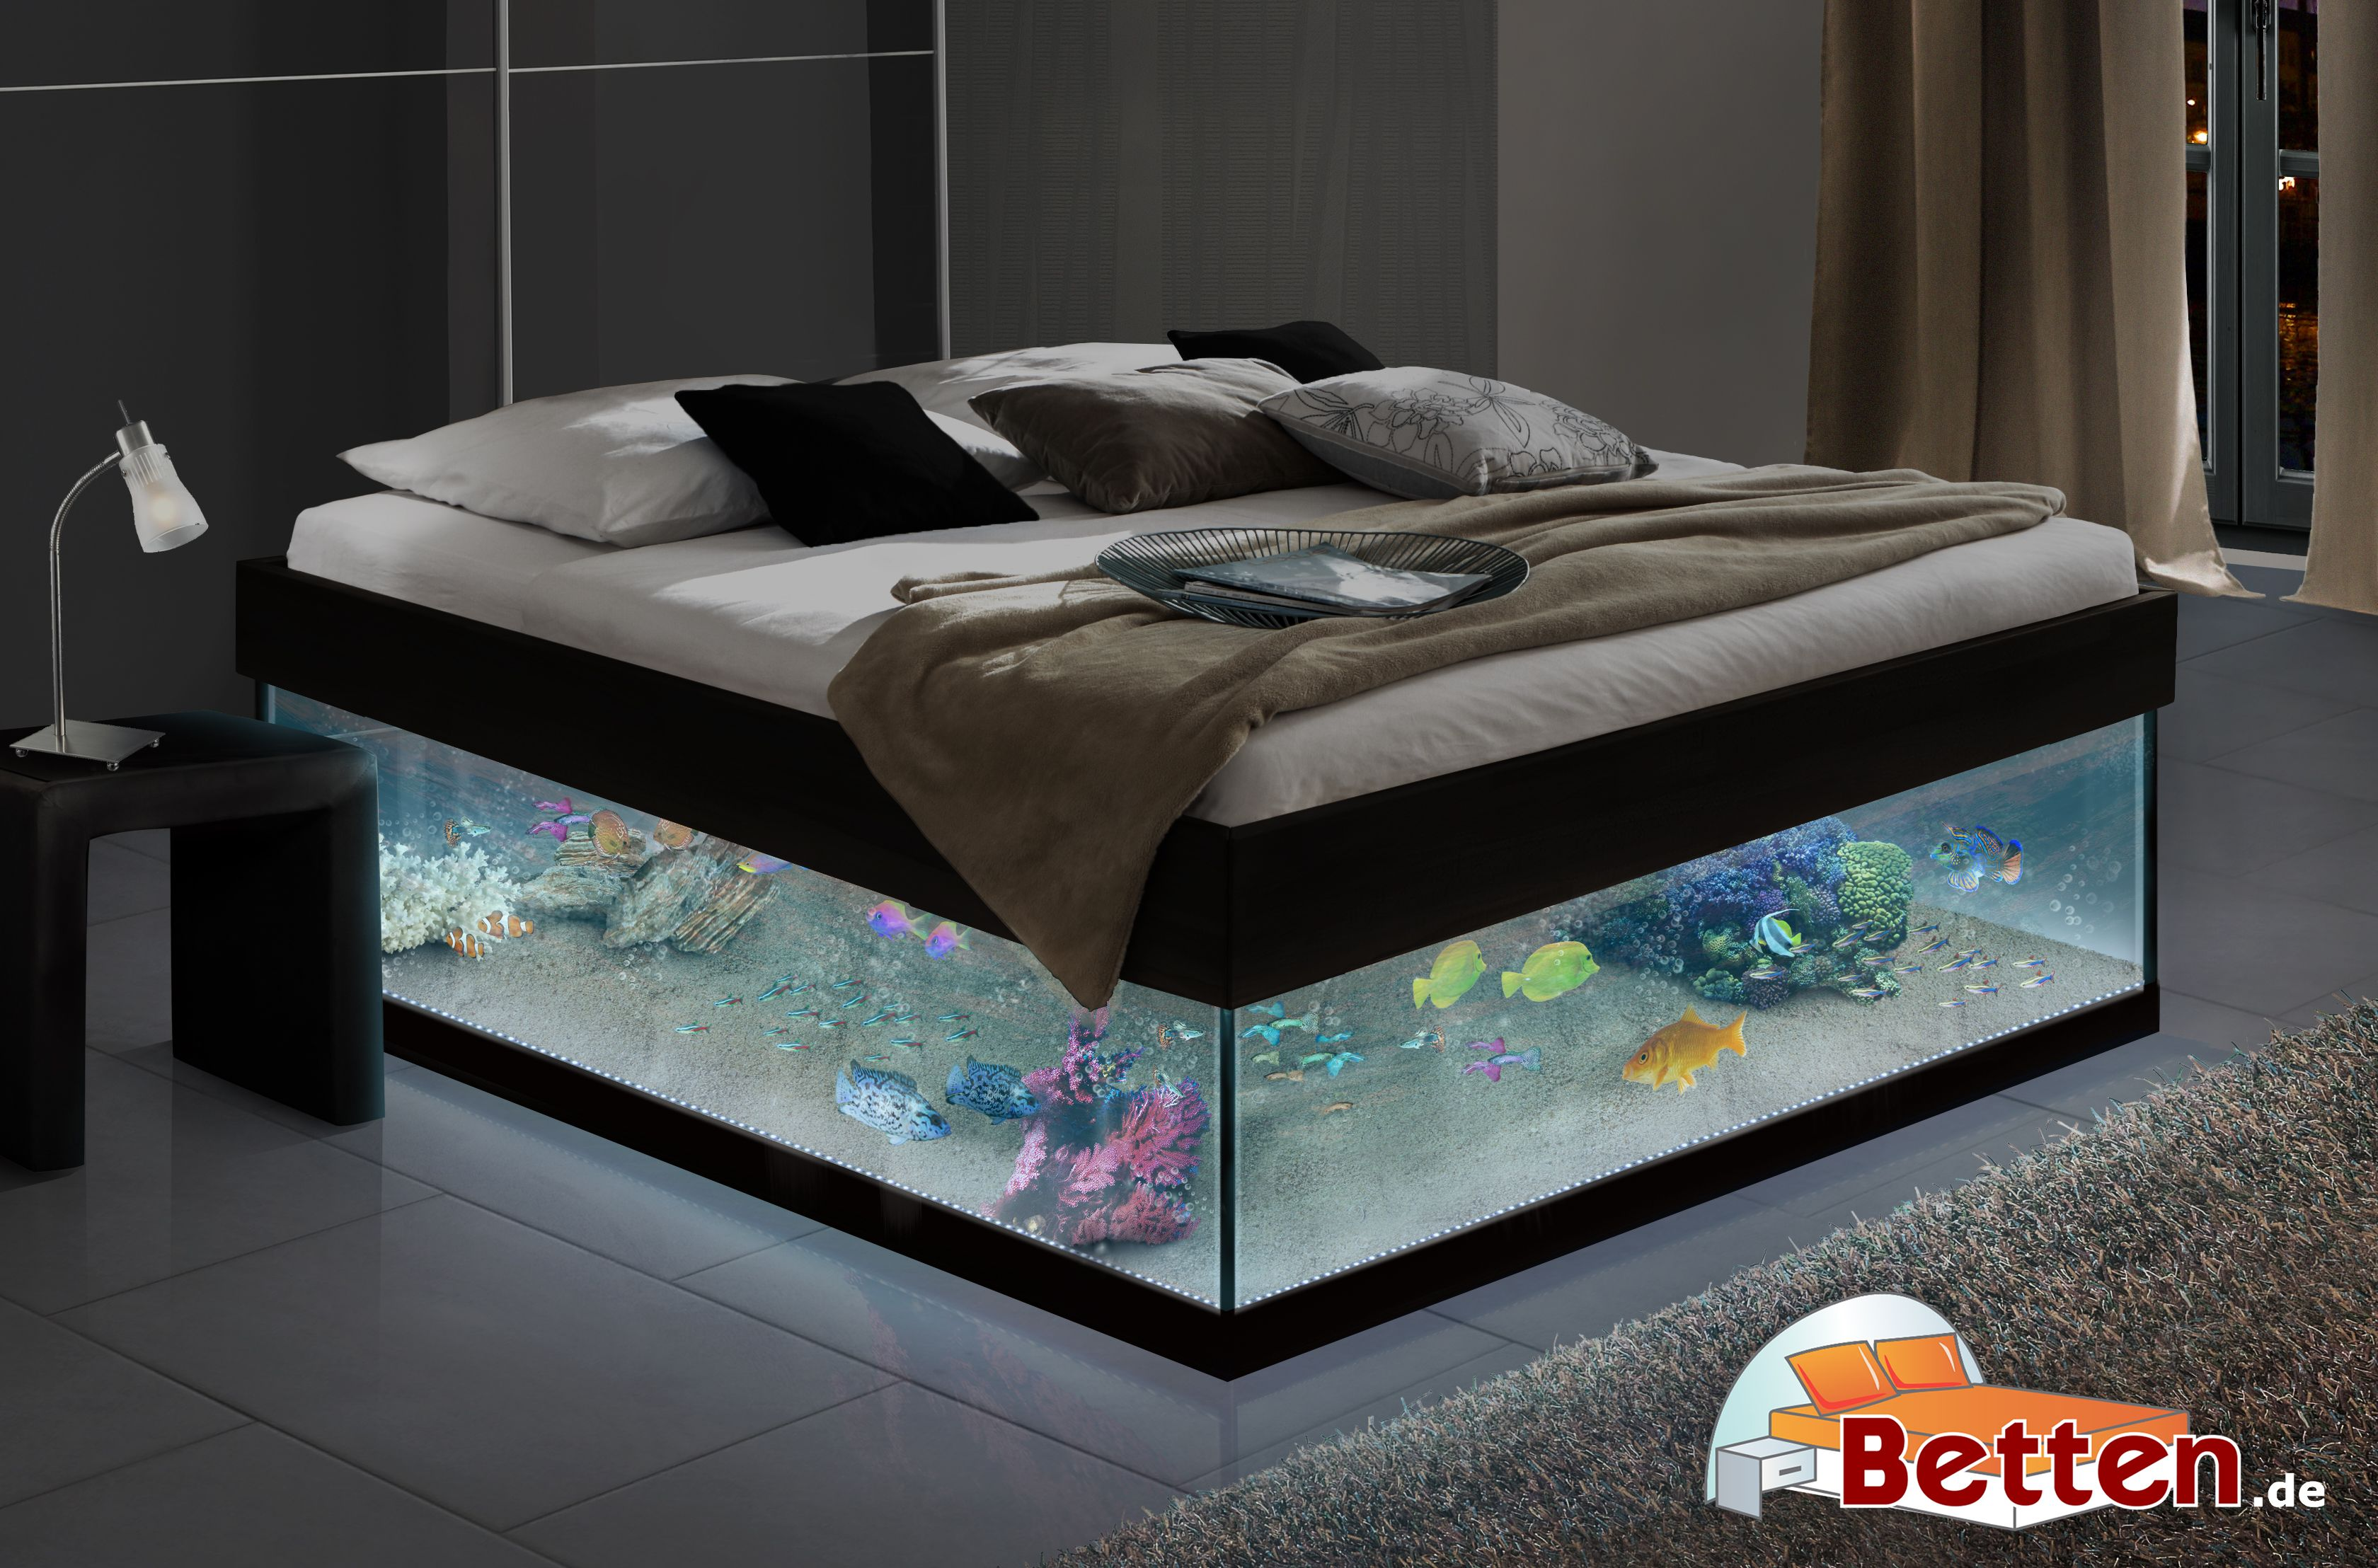 leuchtendes aquariumbett au ergew hnliche betten und schlafzimmerm bel. Black Bedroom Furniture Sets. Home Design Ideas